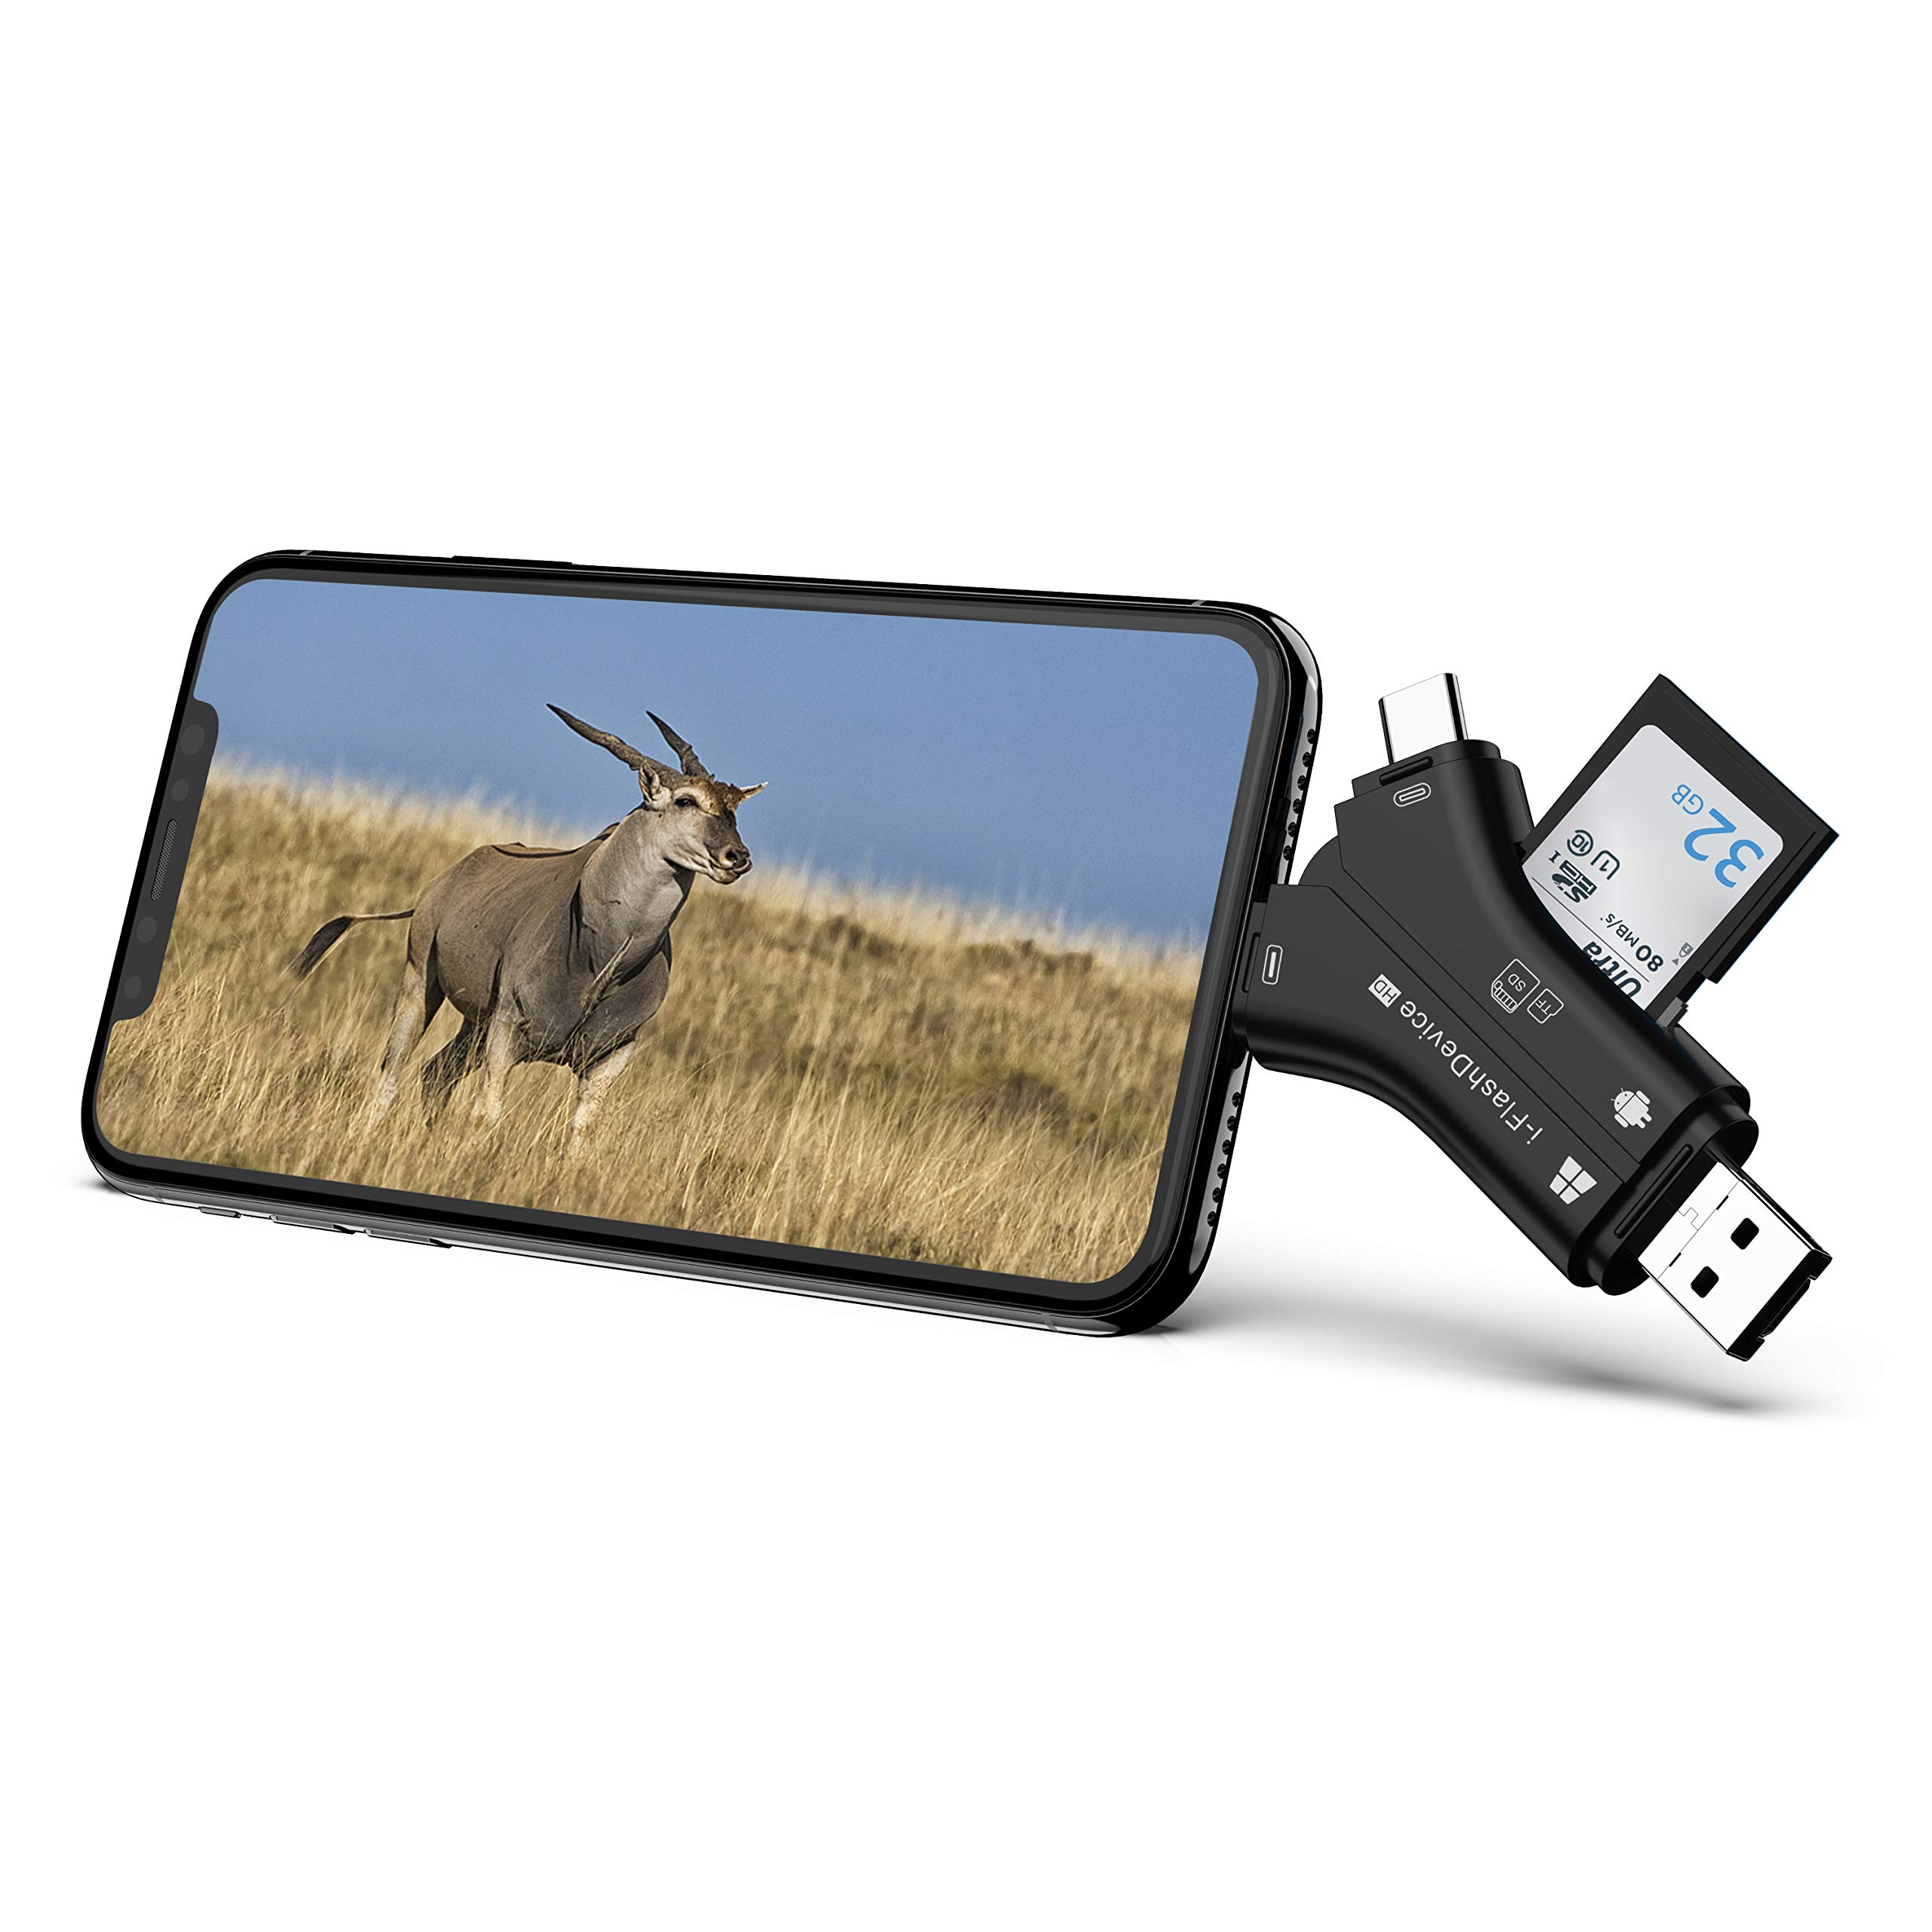 Campark Trail Camera Viewer Compatible with iPhone iPad Mac or Android, SD and Micro SD Memory Card Reader to View Wildlife Game Camera Hunting Photos or Videos on Smartphone by Campark